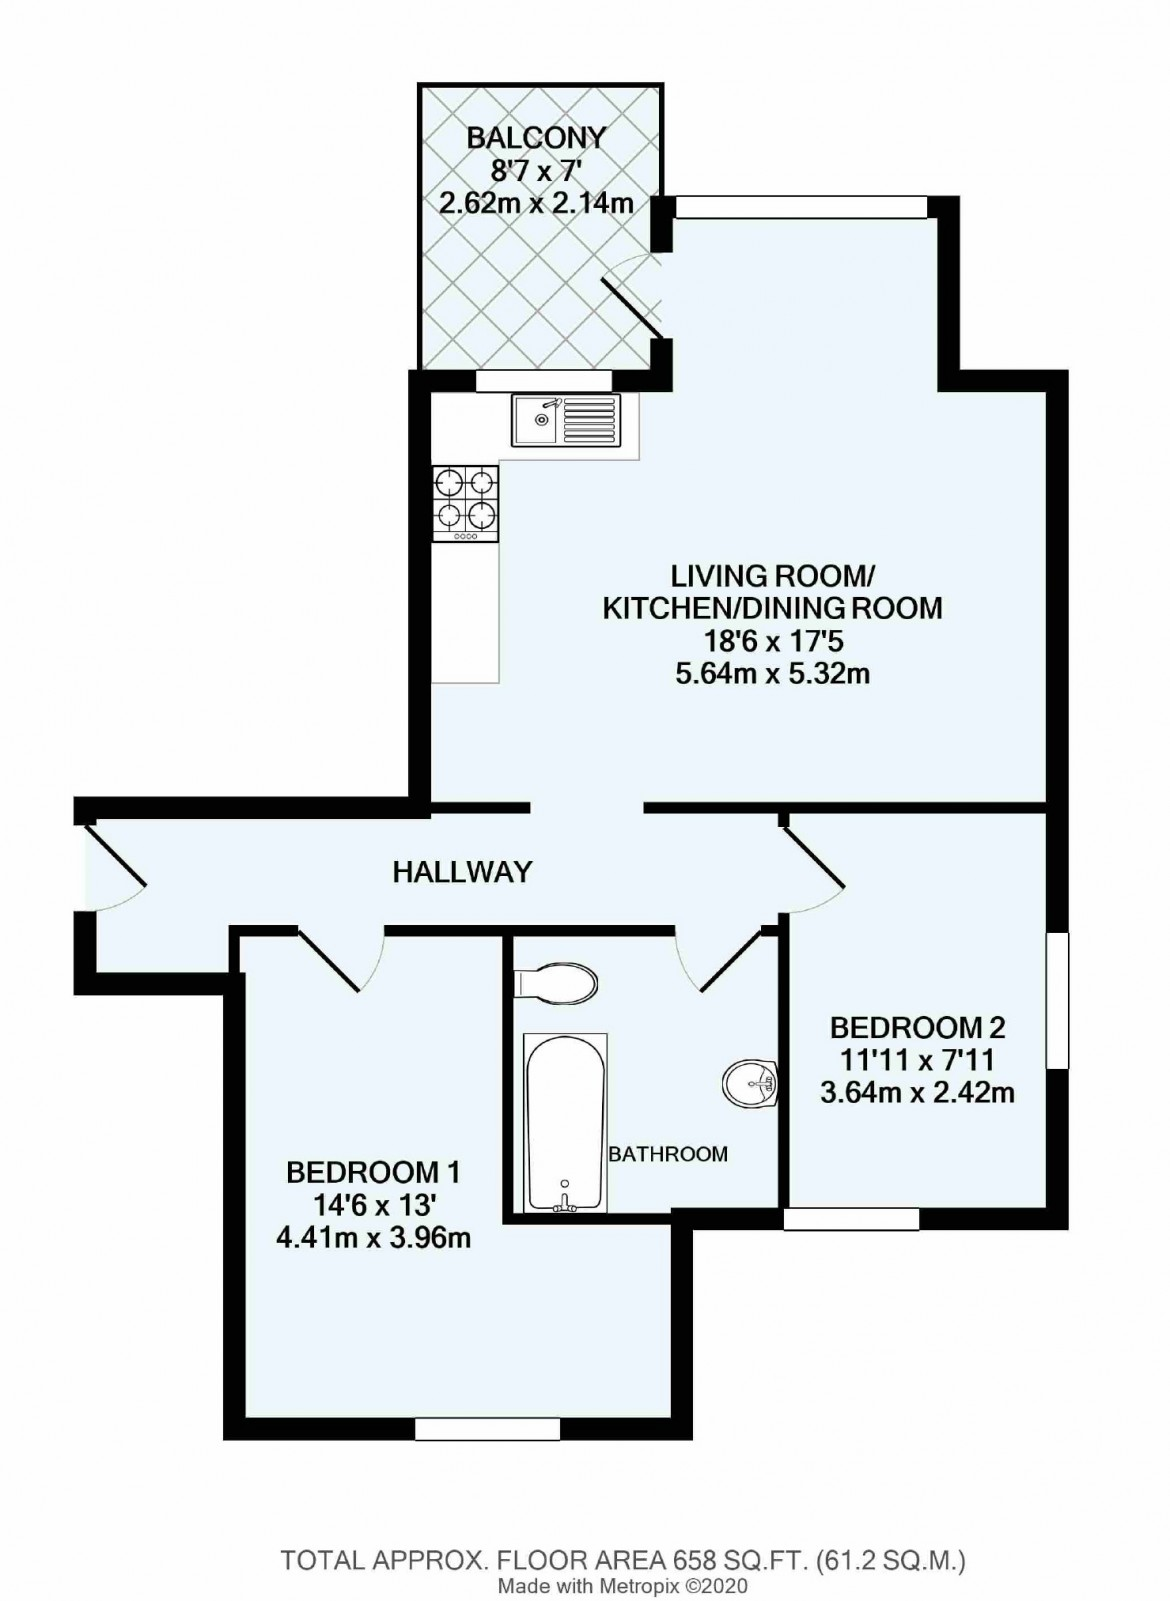 Floorplans For West Hill, Sanderstead, South Croydon, Surrey